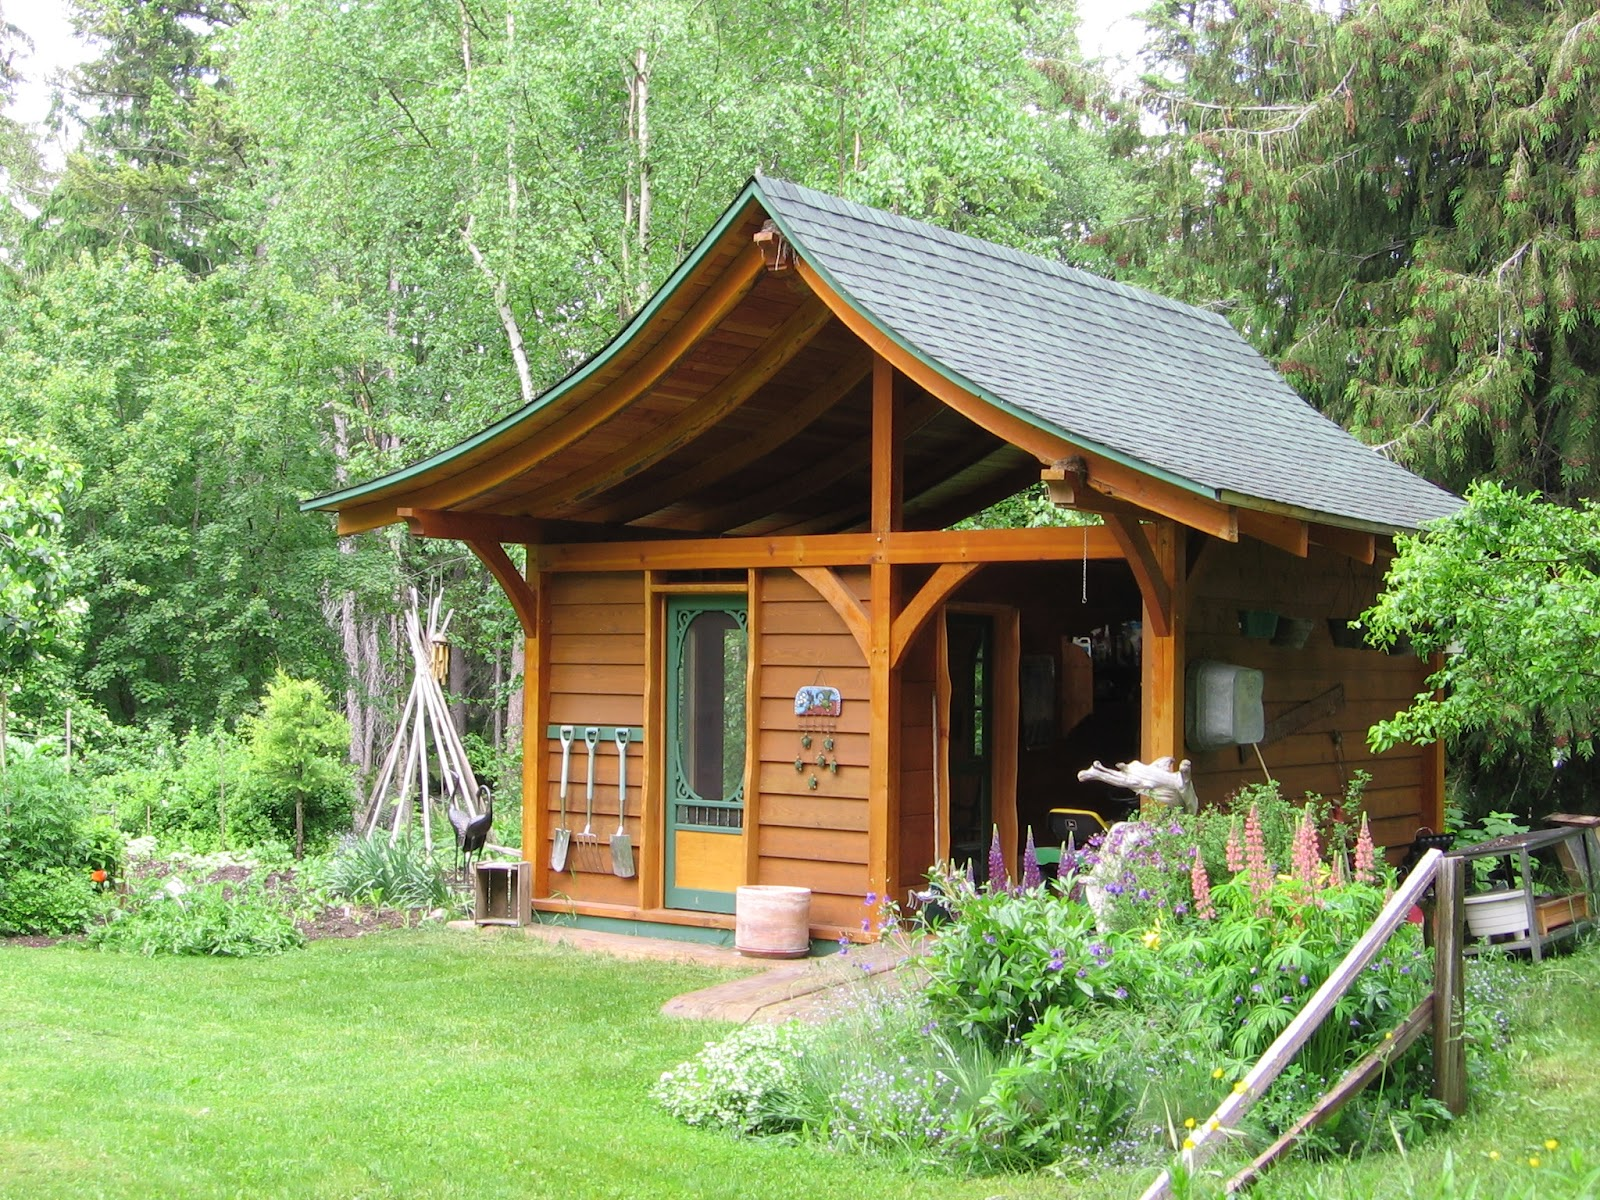 Fairytale backyards 30 magical garden sheds for Outdoor wood shed